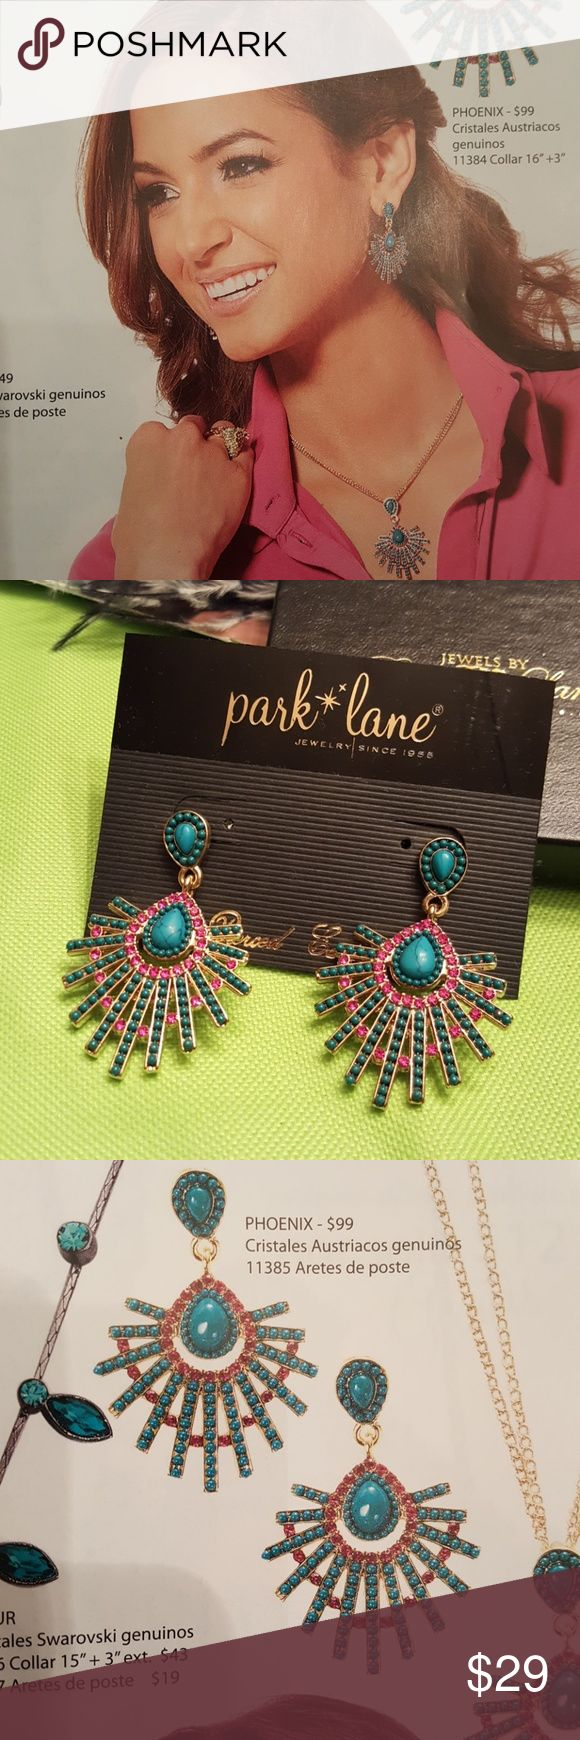 Park Lane Phoenix earring. Park Lane Phoenix Earring. Genuine Austrian crystals. NWT. Park Lane Jewelry Earrings